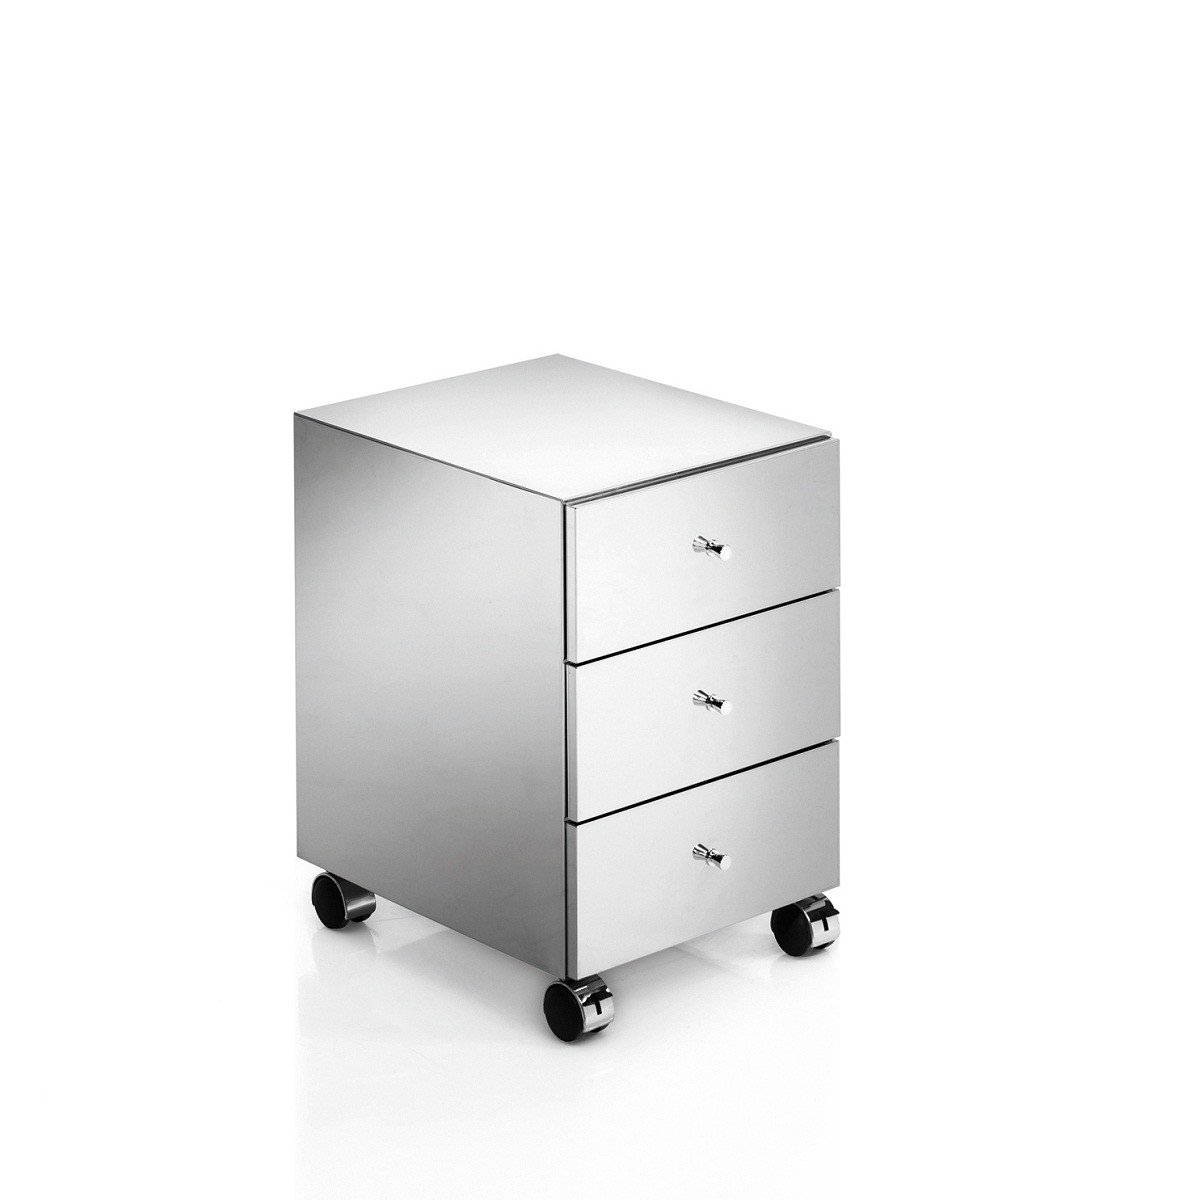 Linea 13.8'' Runner Free Standing Storage Unit